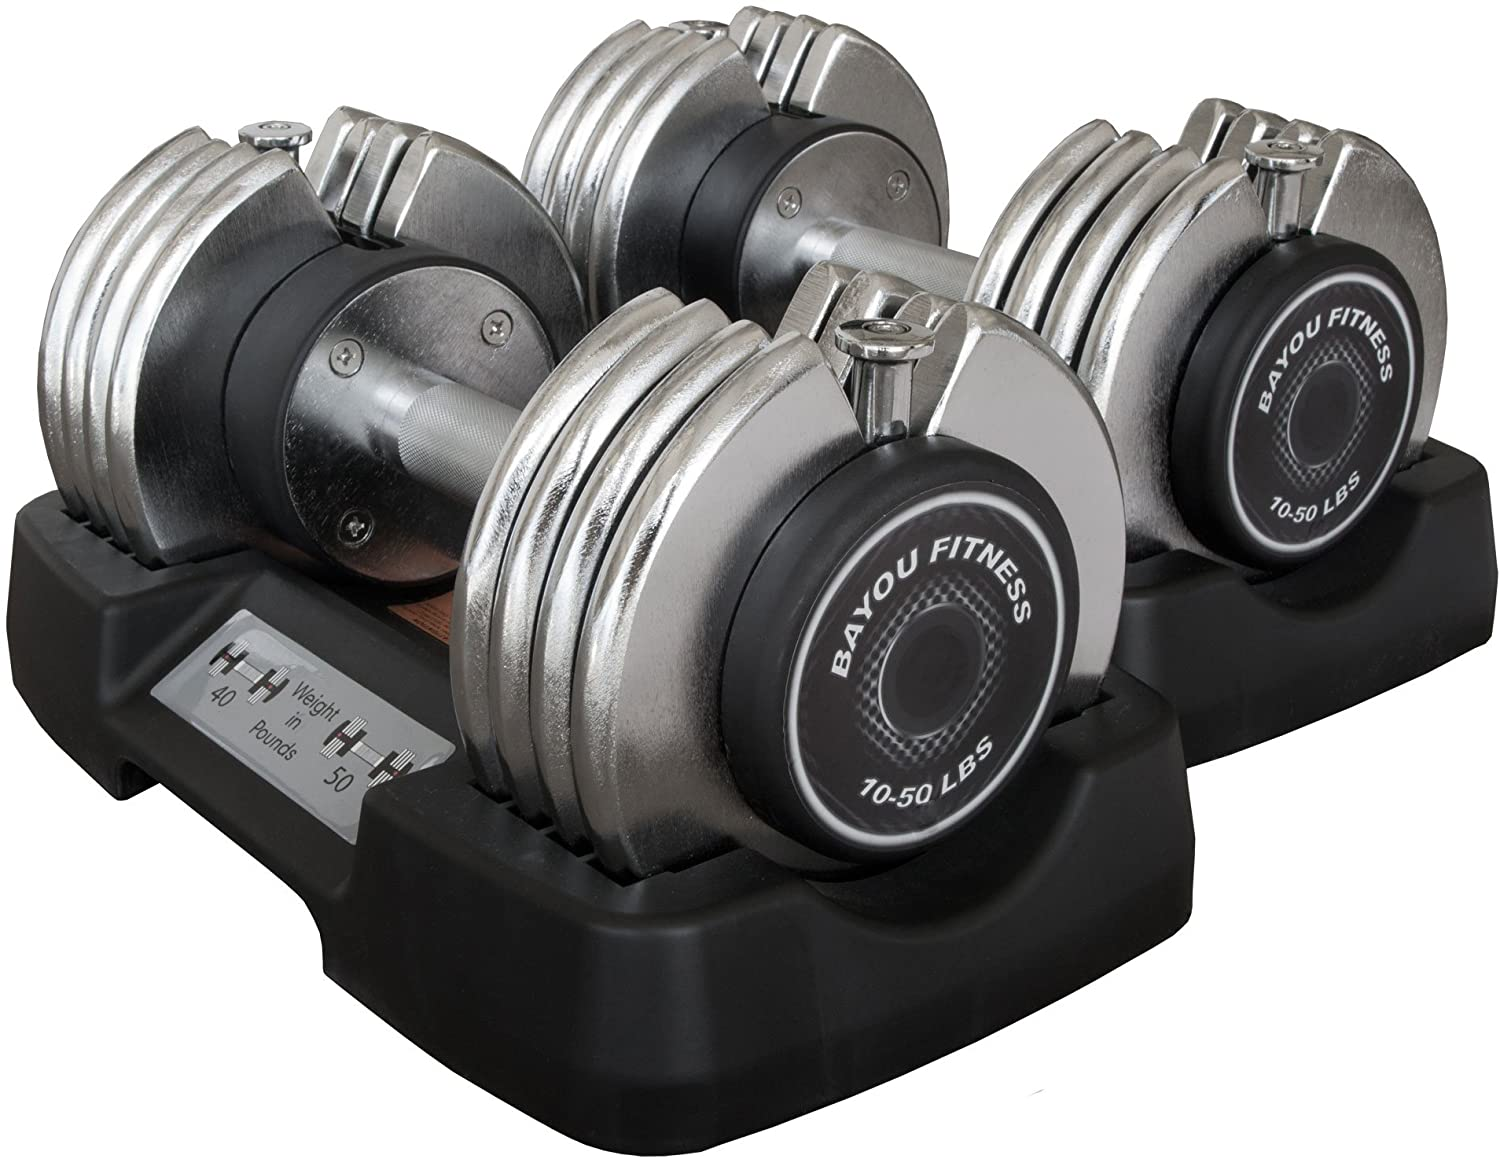 Bayou Fitness Adjustable Dumbbell